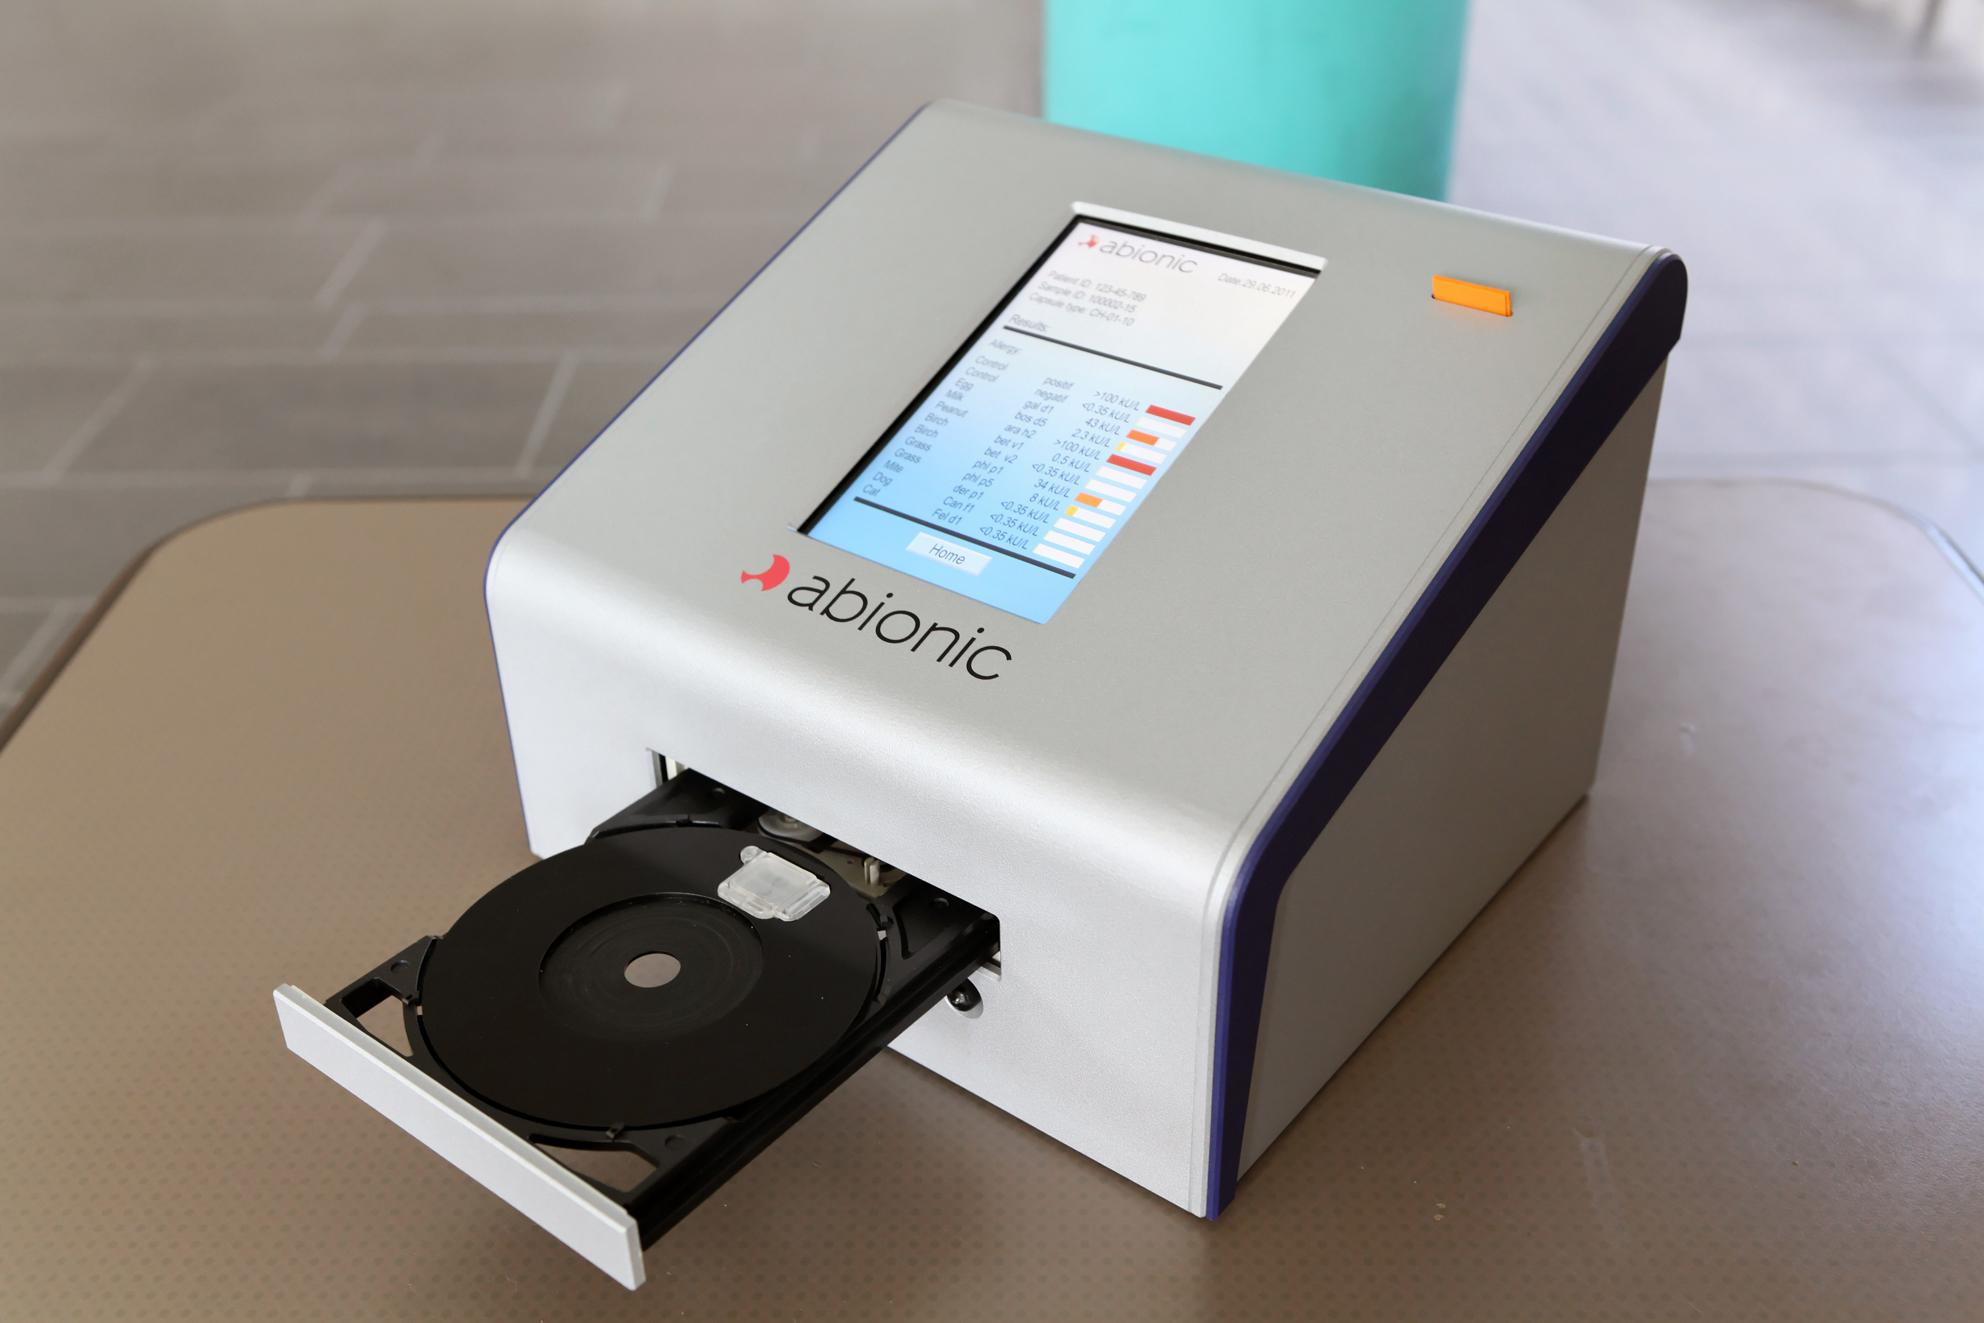 Abionic's new FDA-approved method allows faster allergy diagnosis, identifying 4 common allergies in just one drop of blood.